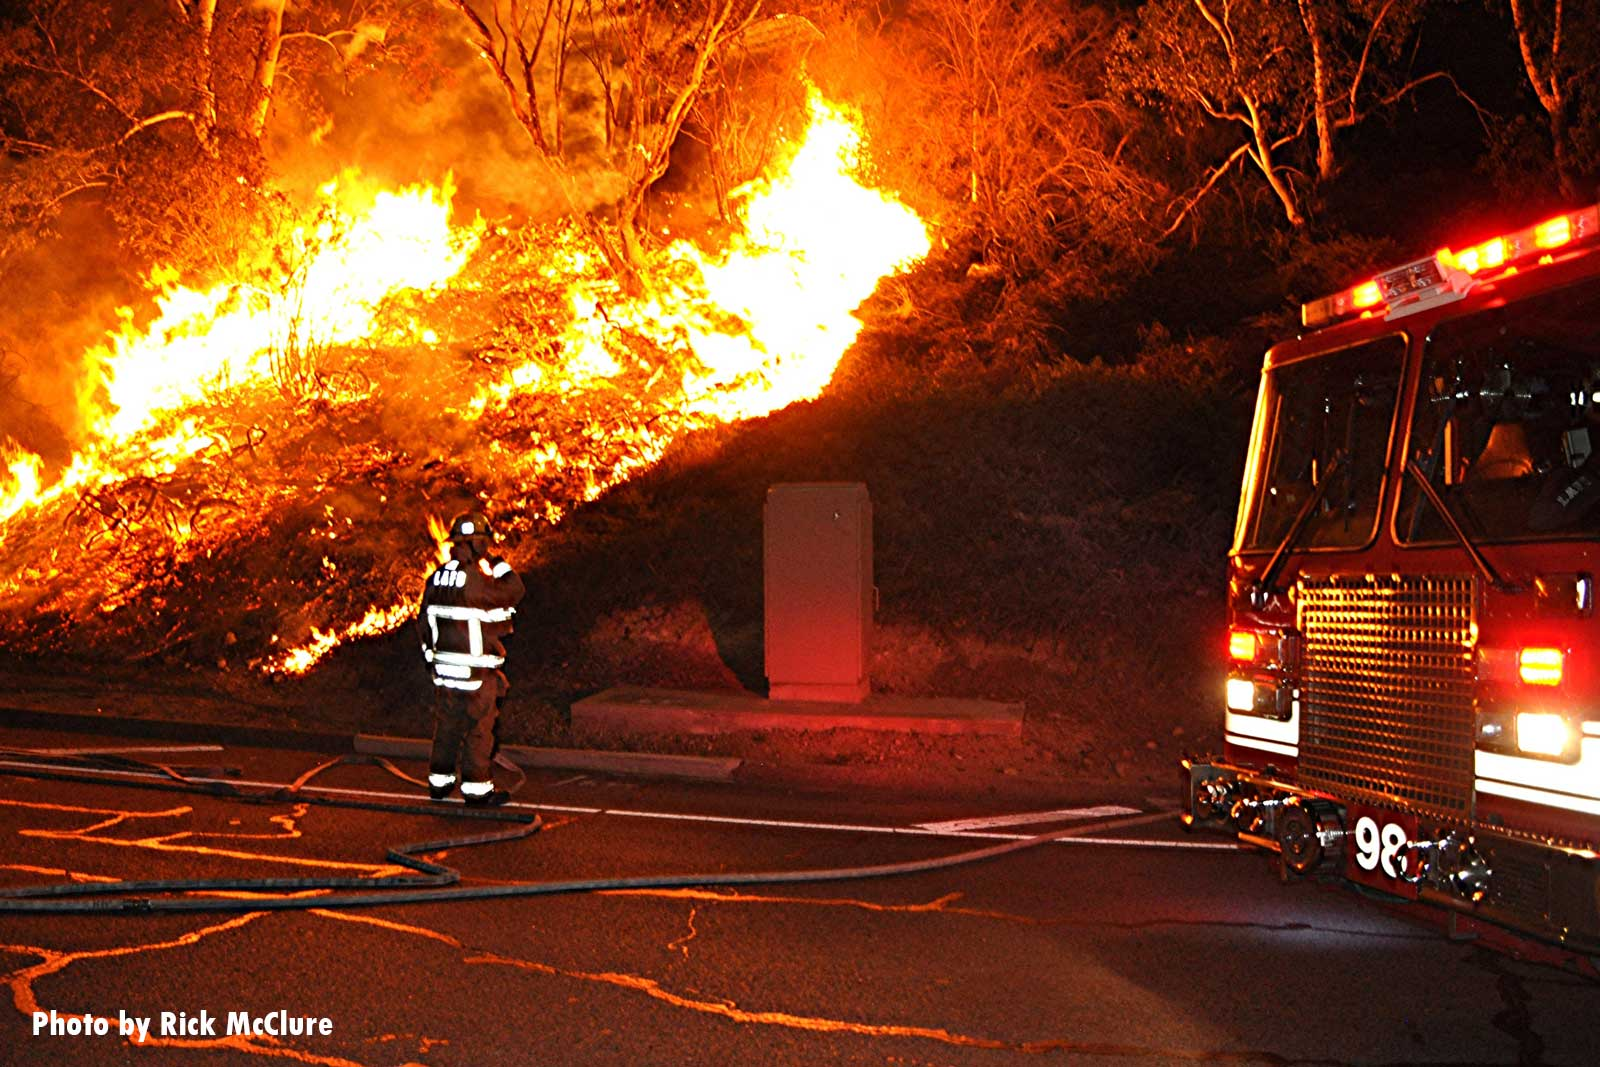 LAFD firefighters at the scene of a fire blazing in vegetation